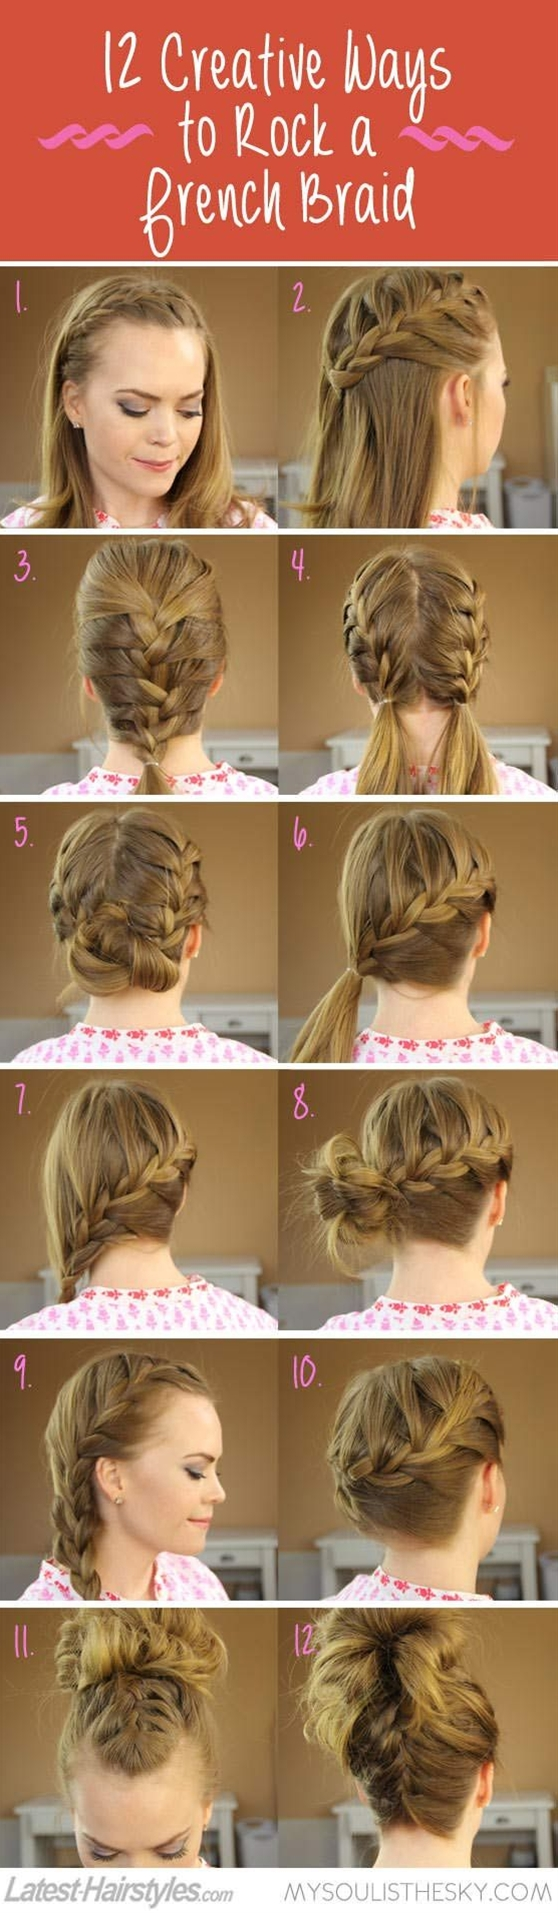 Since the braid trend still hits the top charts, it is the best time to impress everyone by showing off an eye-catching braided hairstyle! Thus, take a look at the gorgeous braided styles presented below and find out how to get braided styles that will make you steal the attention!